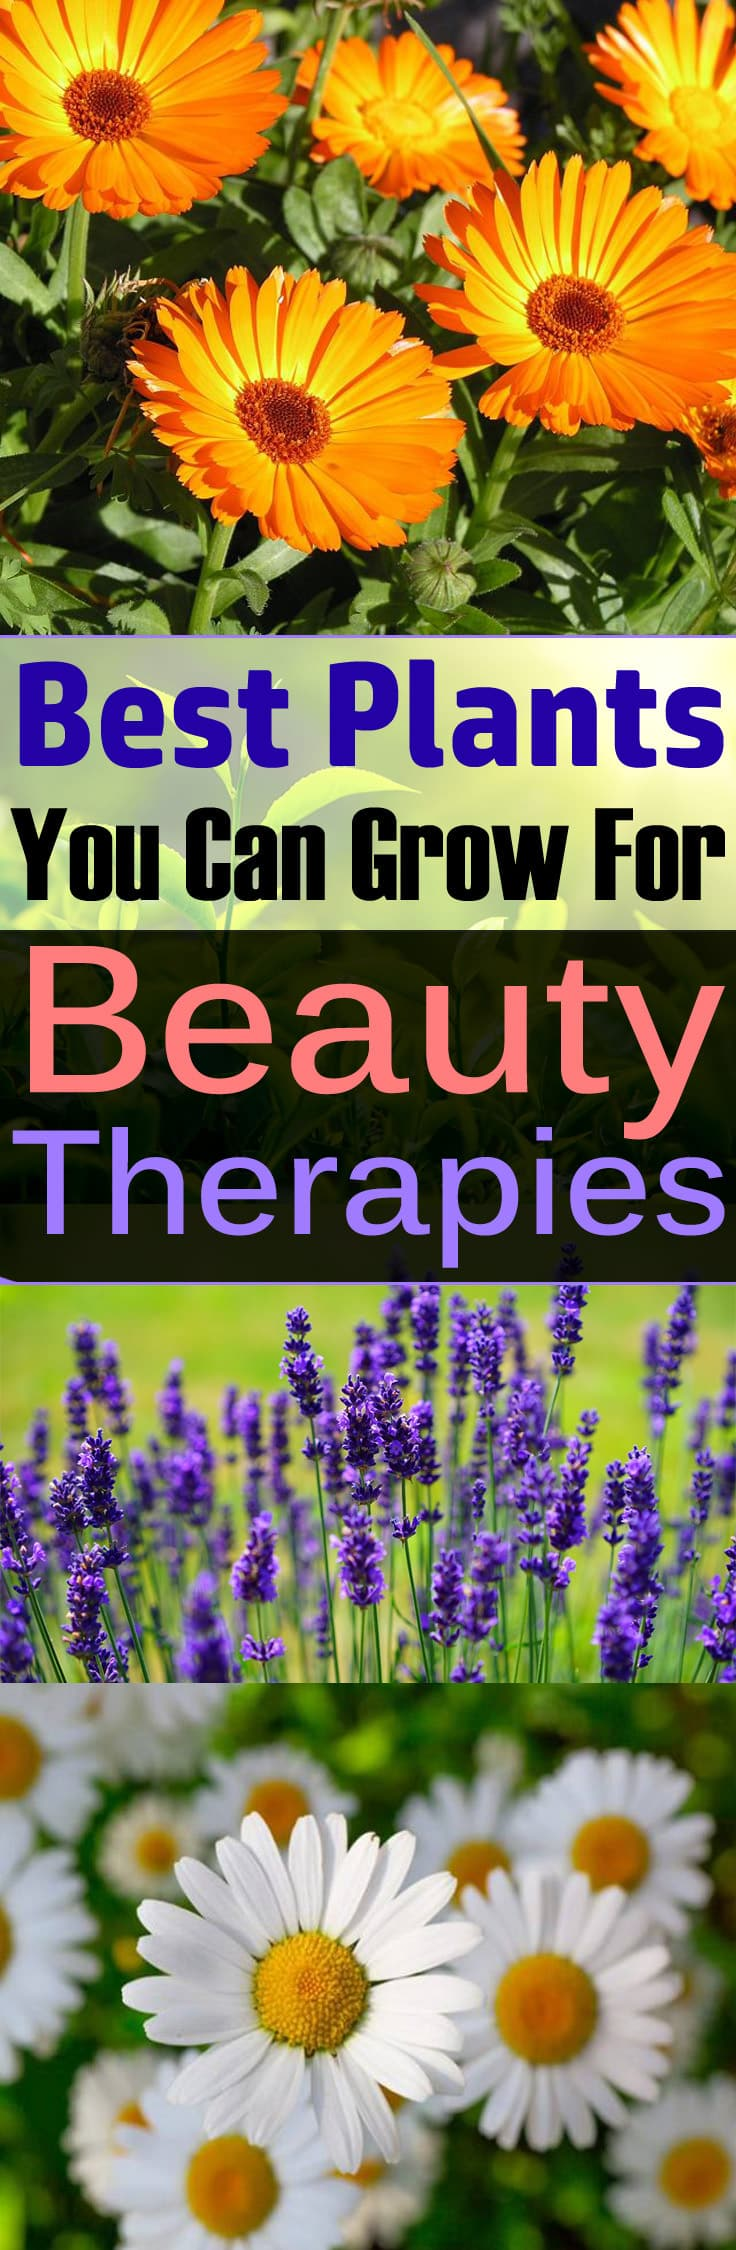 Want to grow plants that can make you more beautiful? Just learn about the plants you can grow for beauty therapies. Must Read!